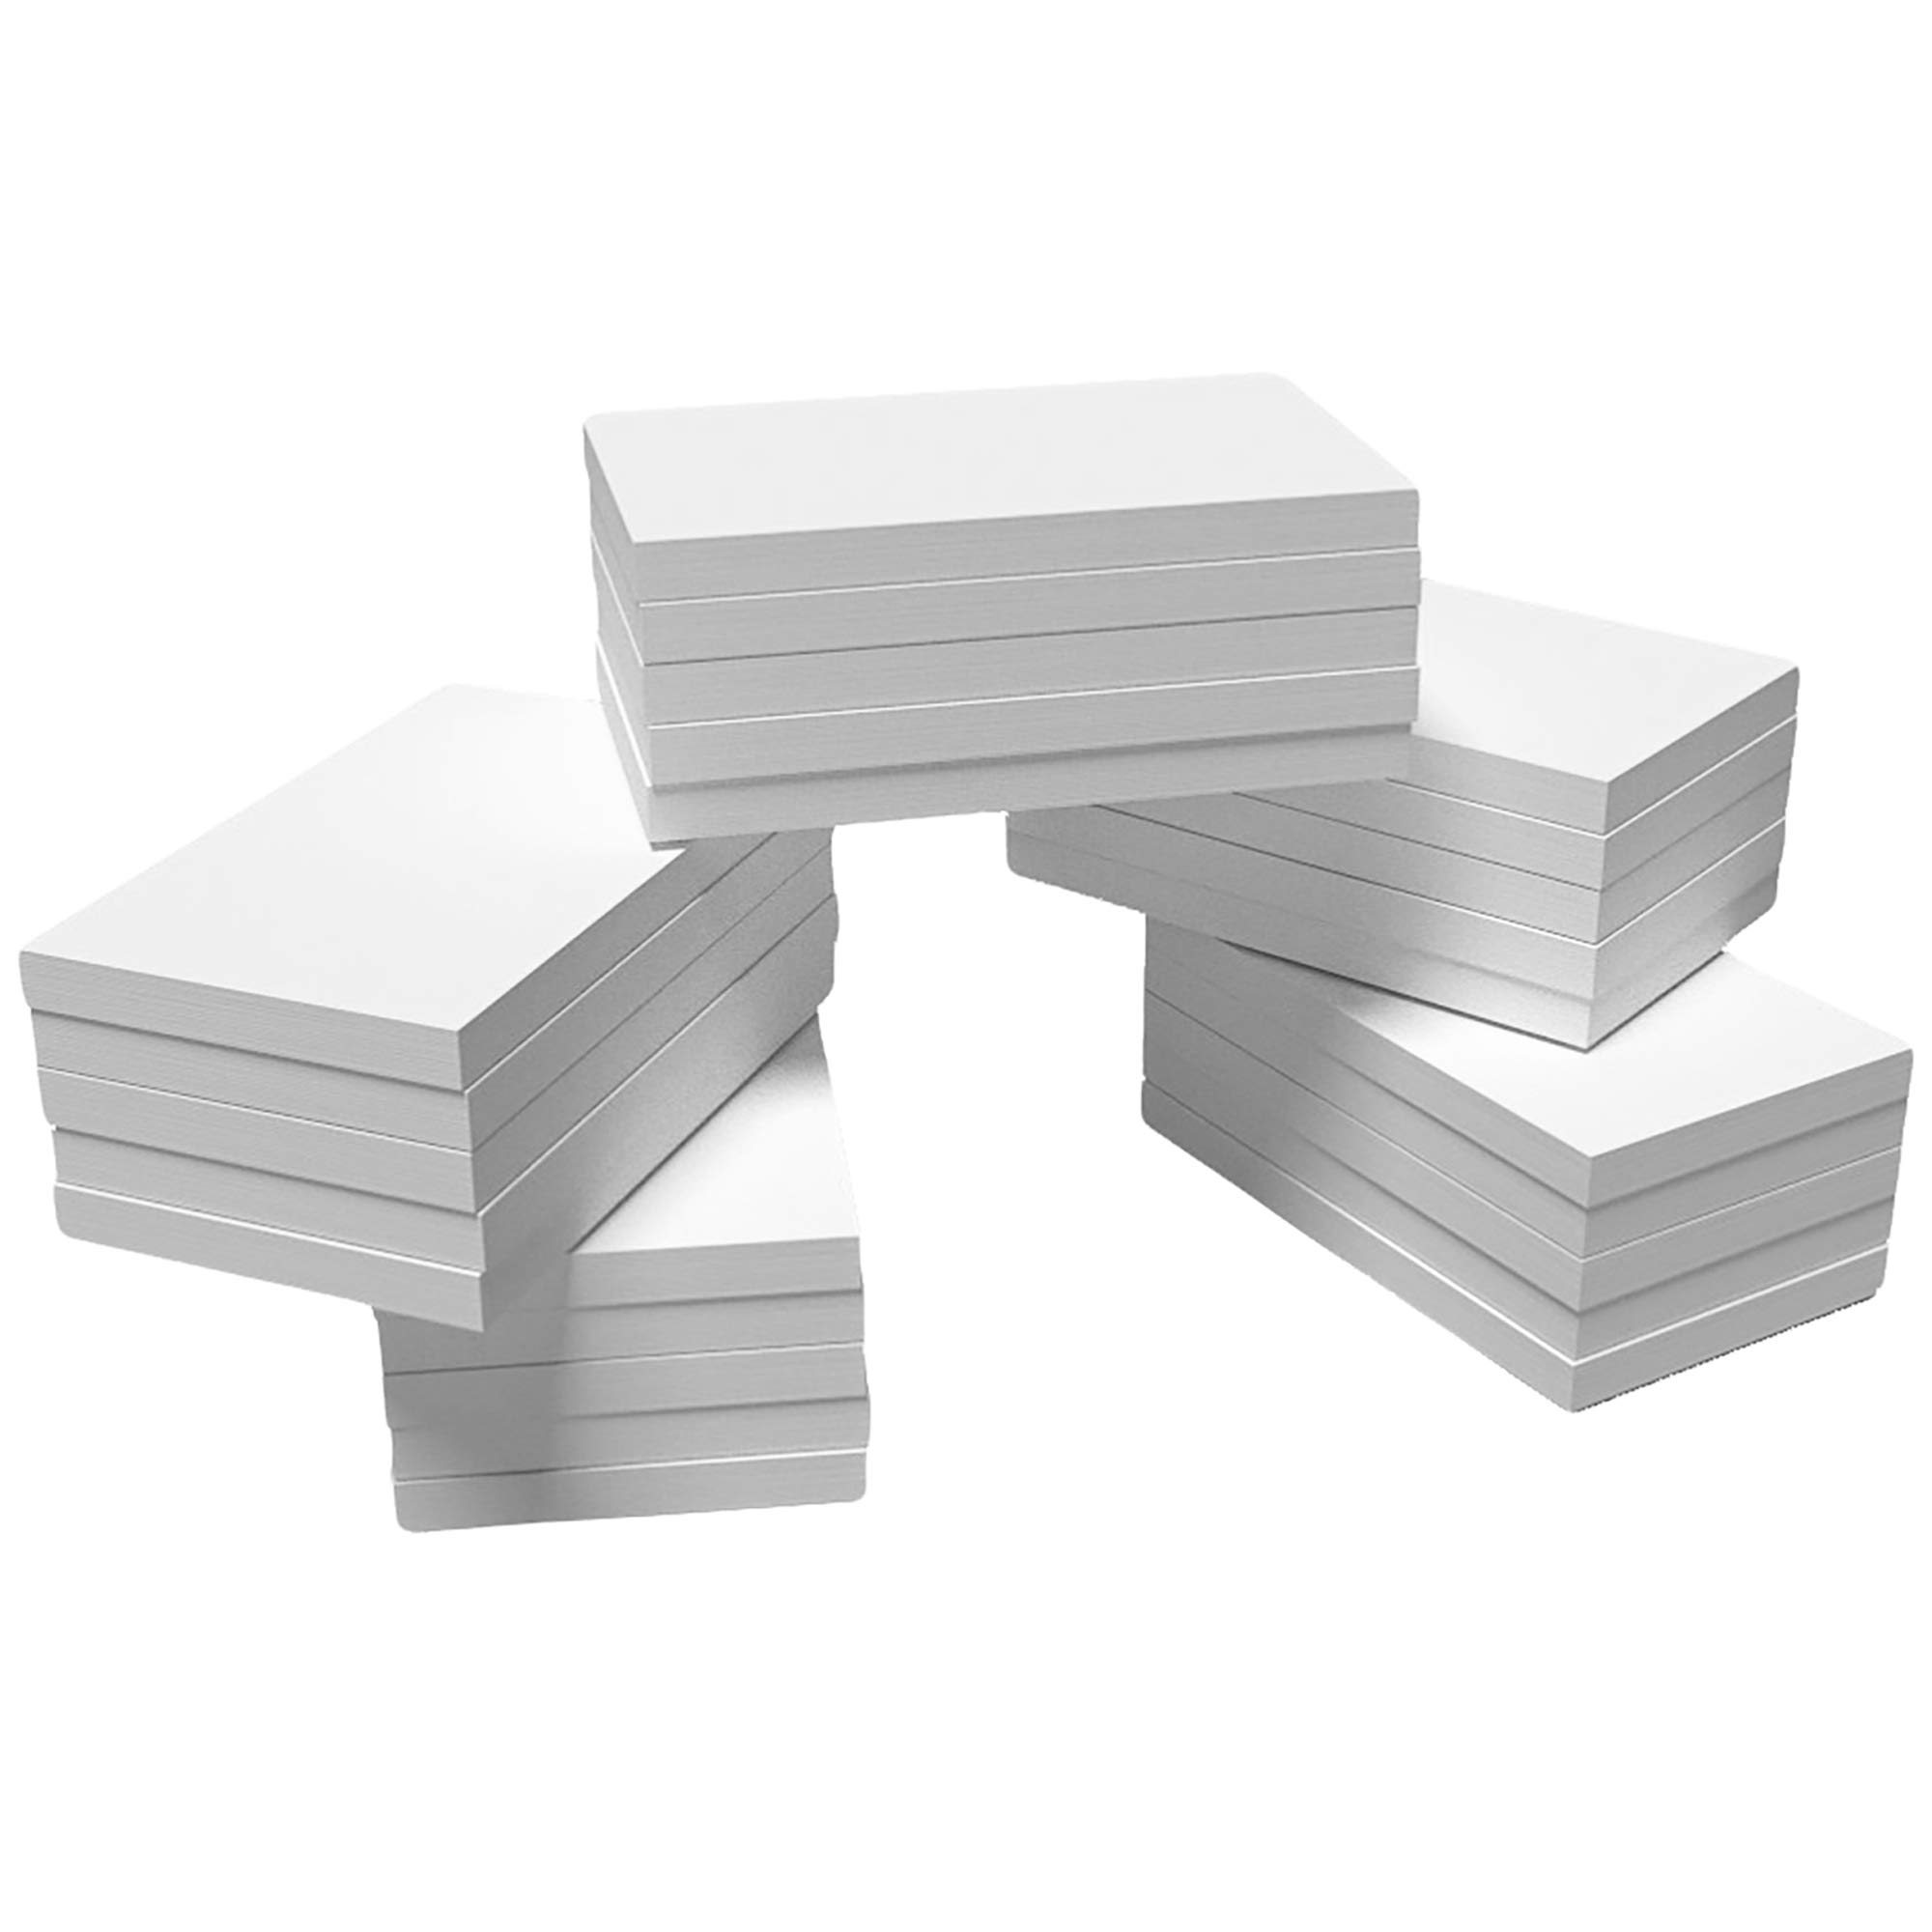 DEBRADALE DESIGNS - Blank Unlined Plain Memo Pads Unruled - 3'' x 5'' Inches - White - Bulk 25 Notepads of 100 Sheets - Each Notepad Glued at 3 Inch Edge - Great Scratch Pads for Every Room in the House by DEBRADALE DESIGNS